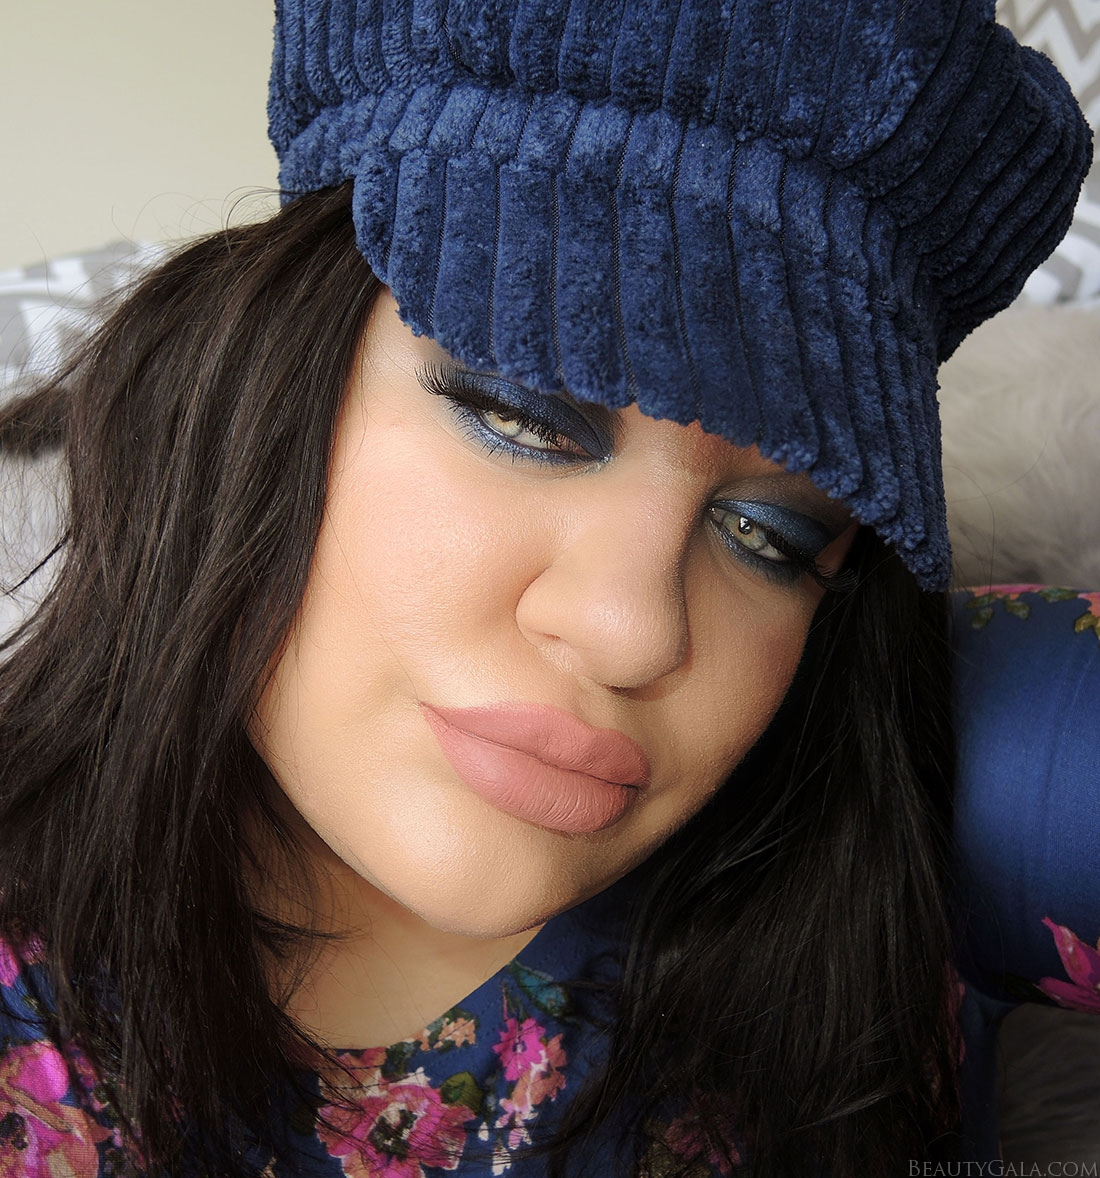 nasty gal, nasty gal newsboy cap, nasty gal hat, navy eye makeup, navy eyeshadow, blue eyeshadow, smokey eyes